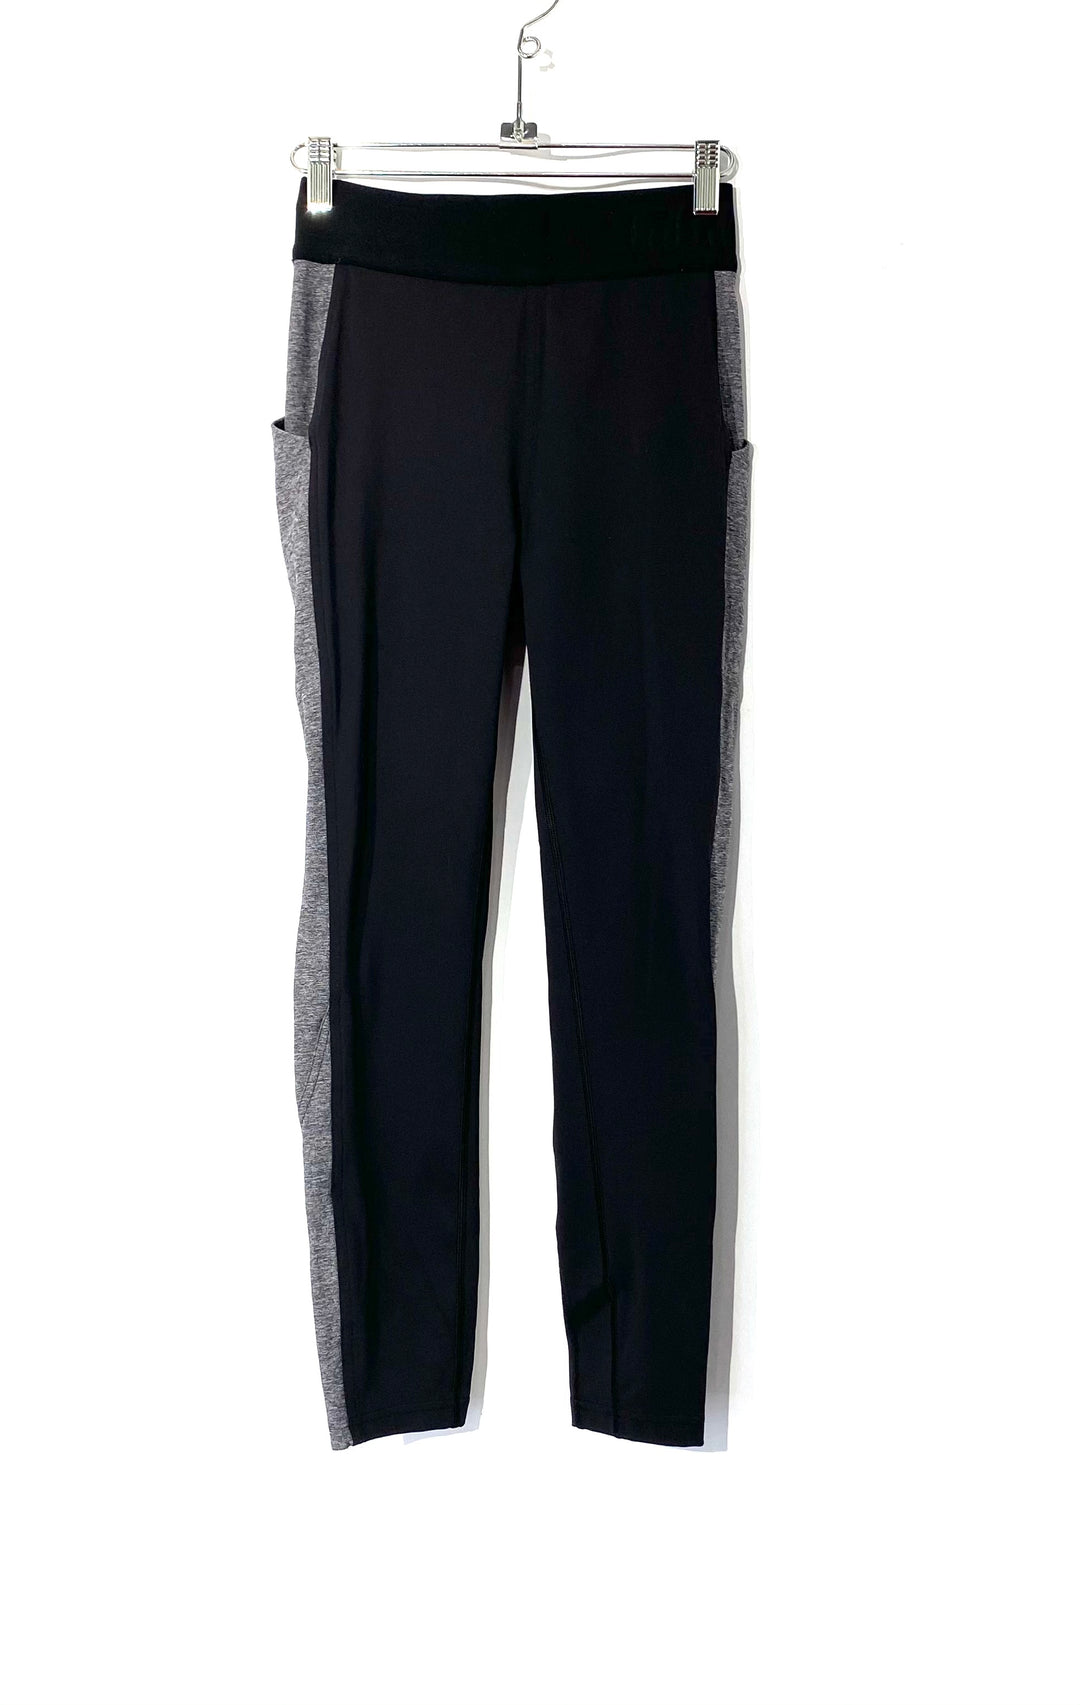 Primary Photo - BRAND: LULULEMON <BR>STYLE: ATHLETIC PANTS<BR>COLOR: GREY BLACK<BR>SIZE: 6 <BR>SKU: 262-26275-72802<BR>DESIGNER FINAL